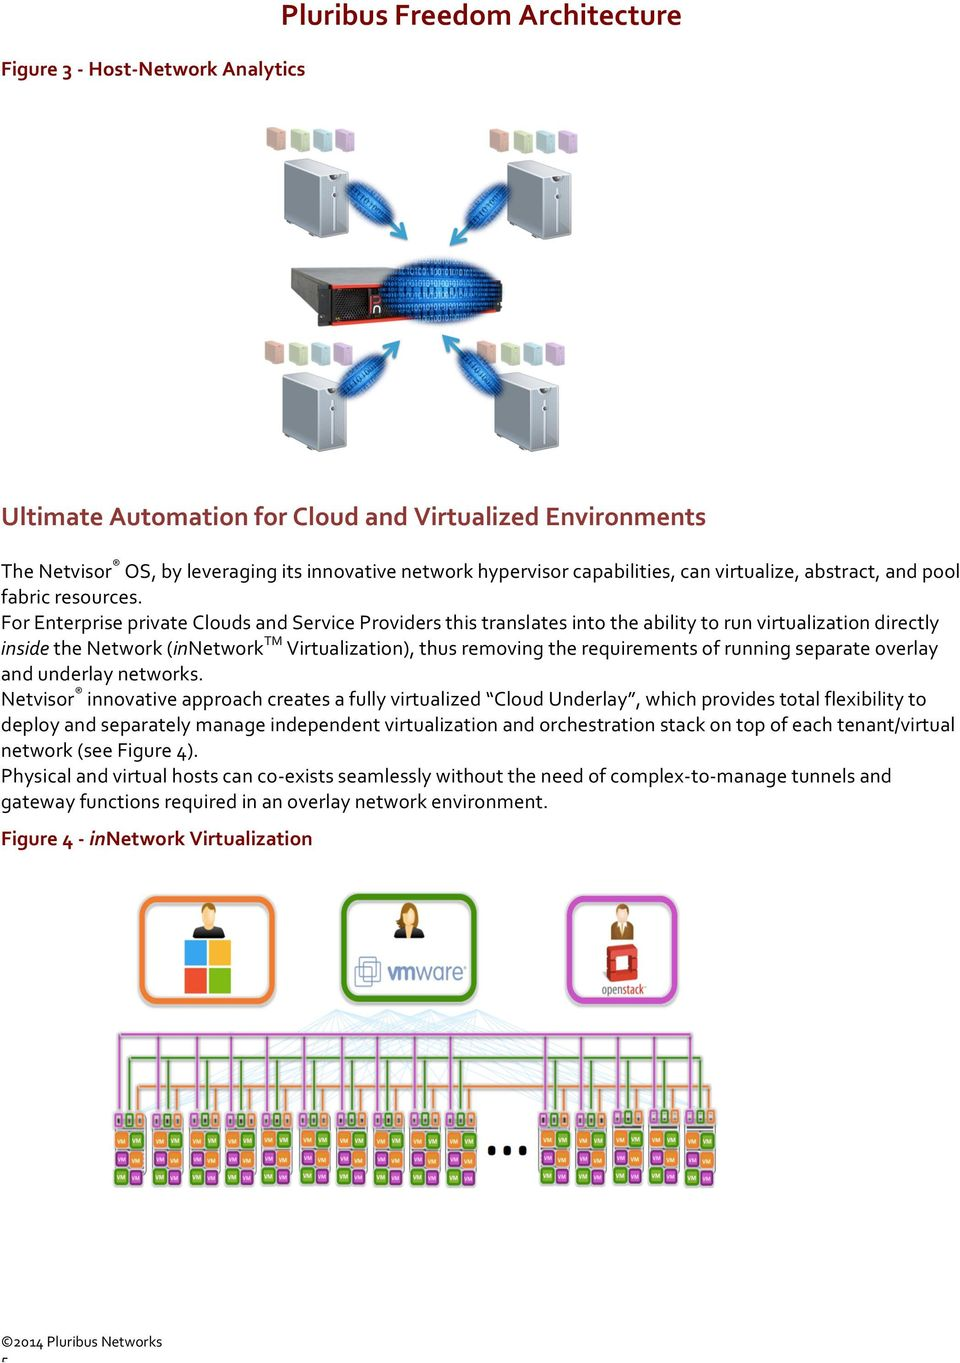 For Enterprise private Clouds and Service Providers this translates into the ability to run virtualization directly inside the Network (innetwork TM Virtualization), thus removing the requirements of